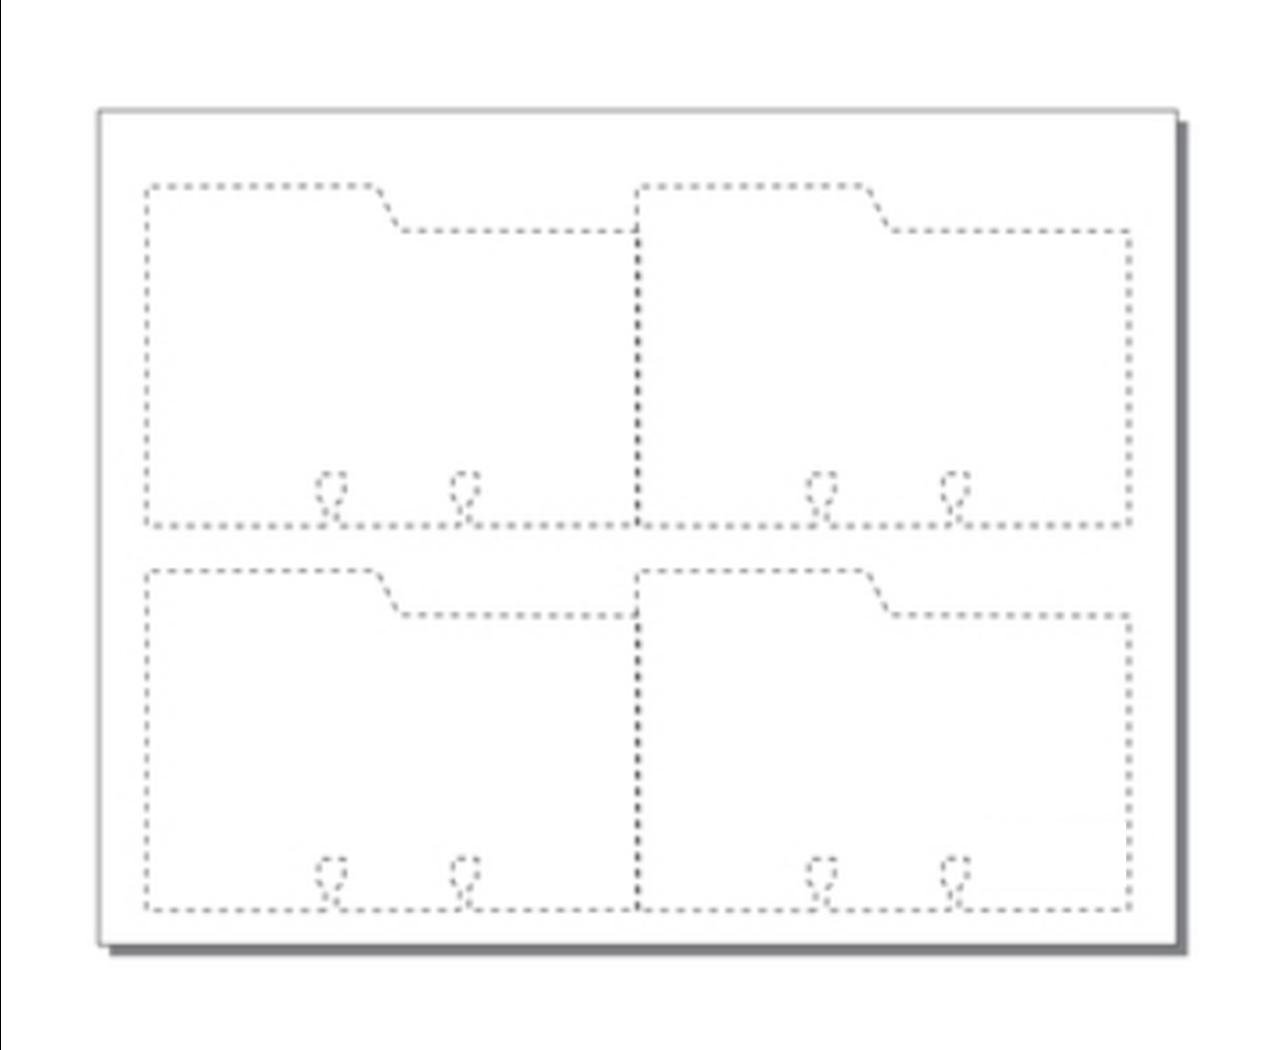 """Print-Ready Rotary File Cards w Left Tab (3"""" x 5""""), 4-UP, Die-Cut on 8-1/2"""" x 11"""" White 65lb Cover Paper - 250 Sheets (1,000 File Cards)"""